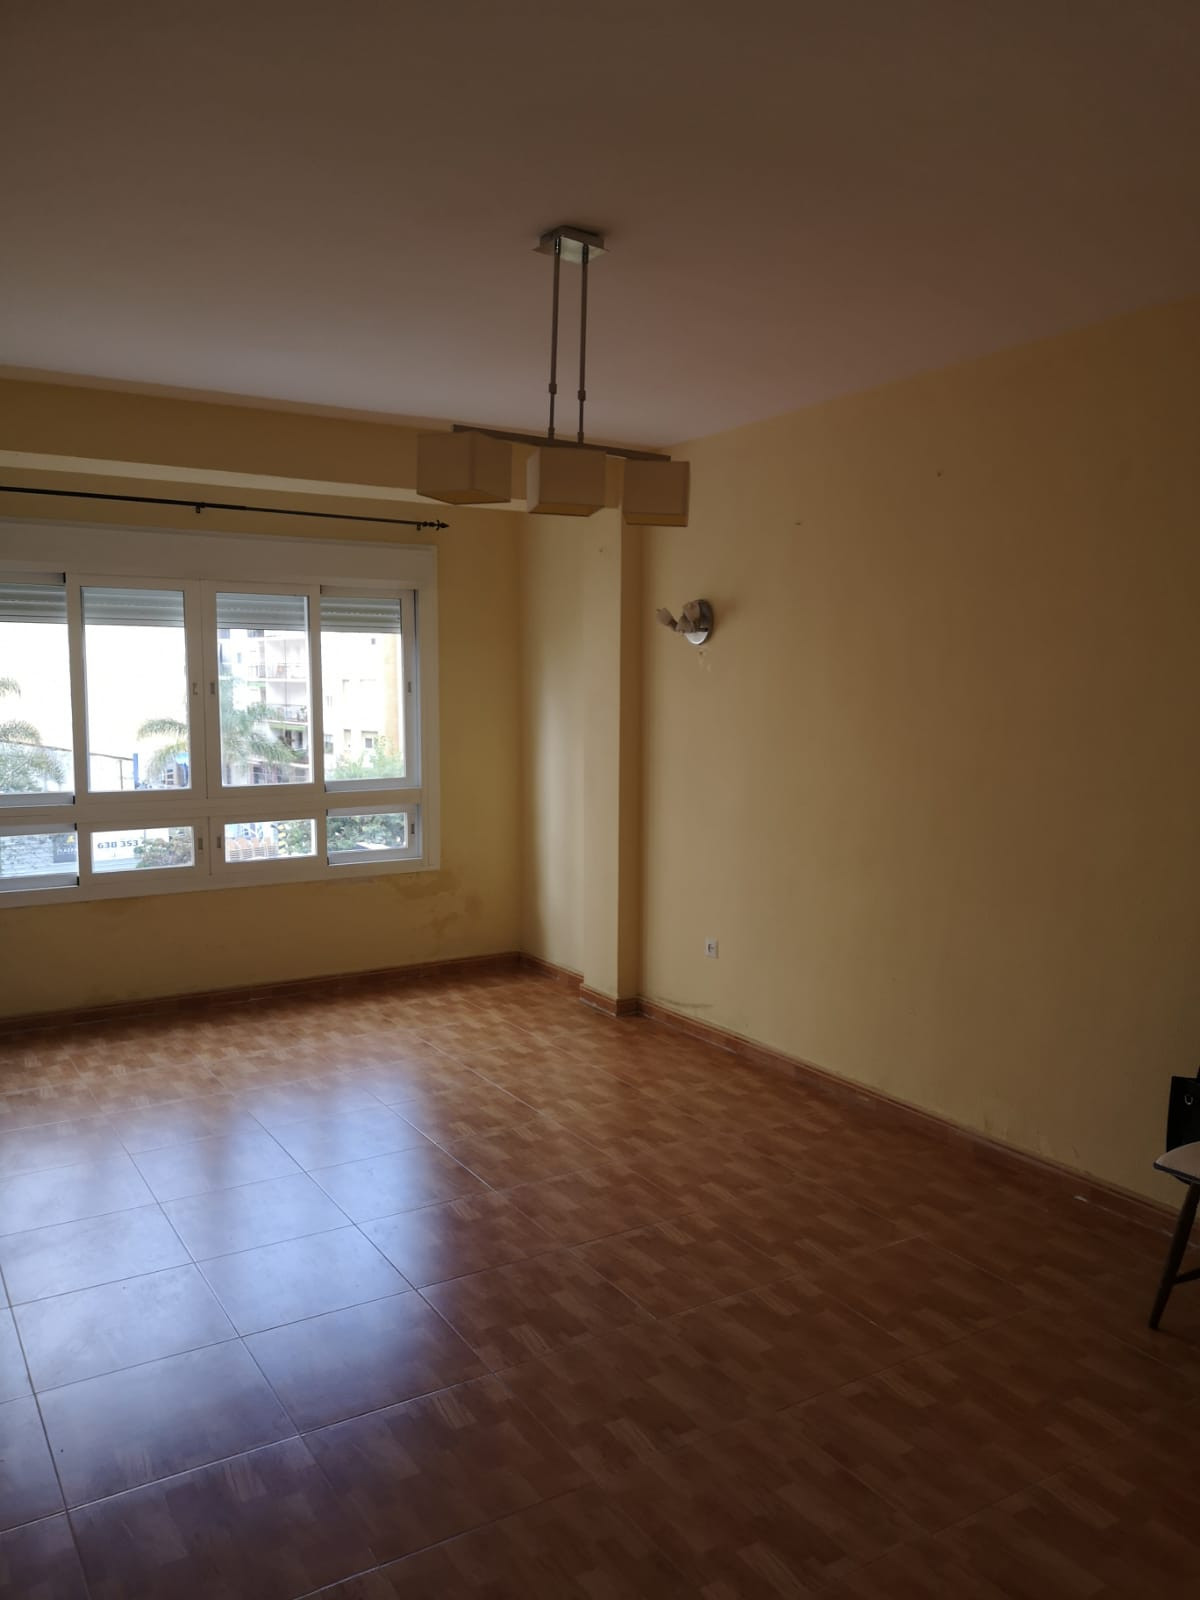 R3794980 | Middle Floor Apartment in Estepona – € 160,000 – 3 beds, 2 baths